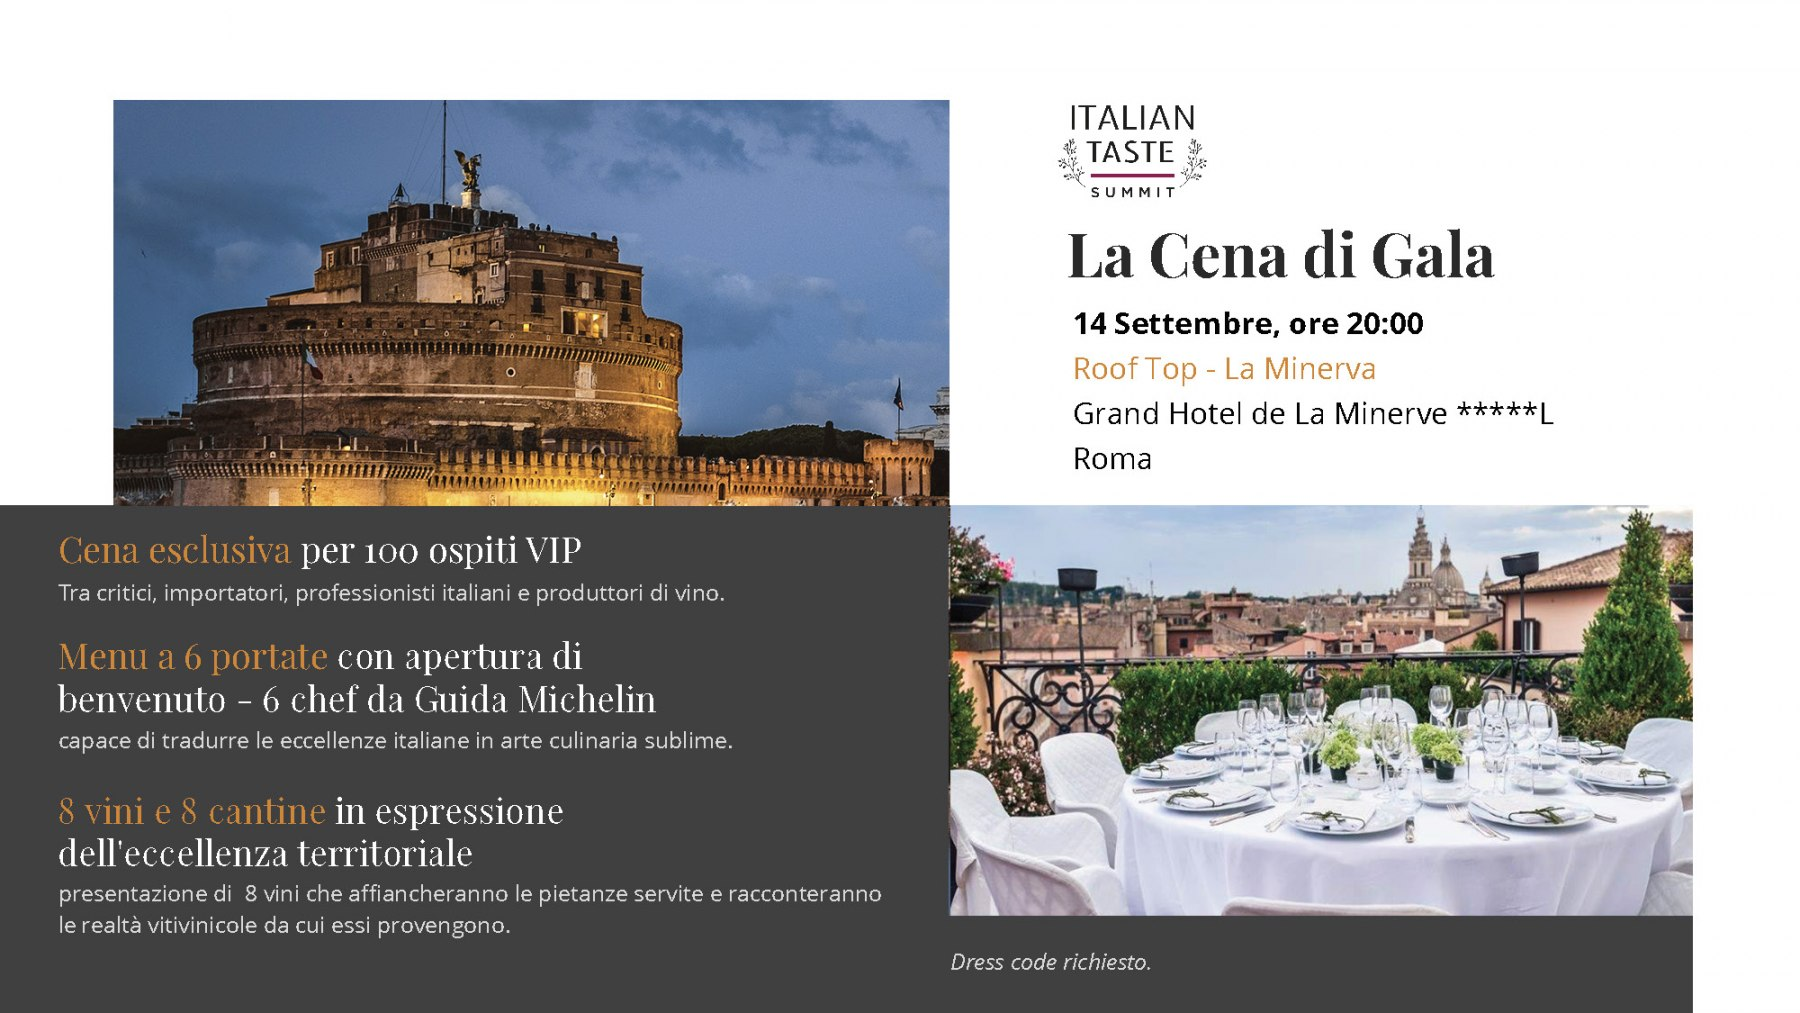 Italian-Taste-Summit-IT-2020_09